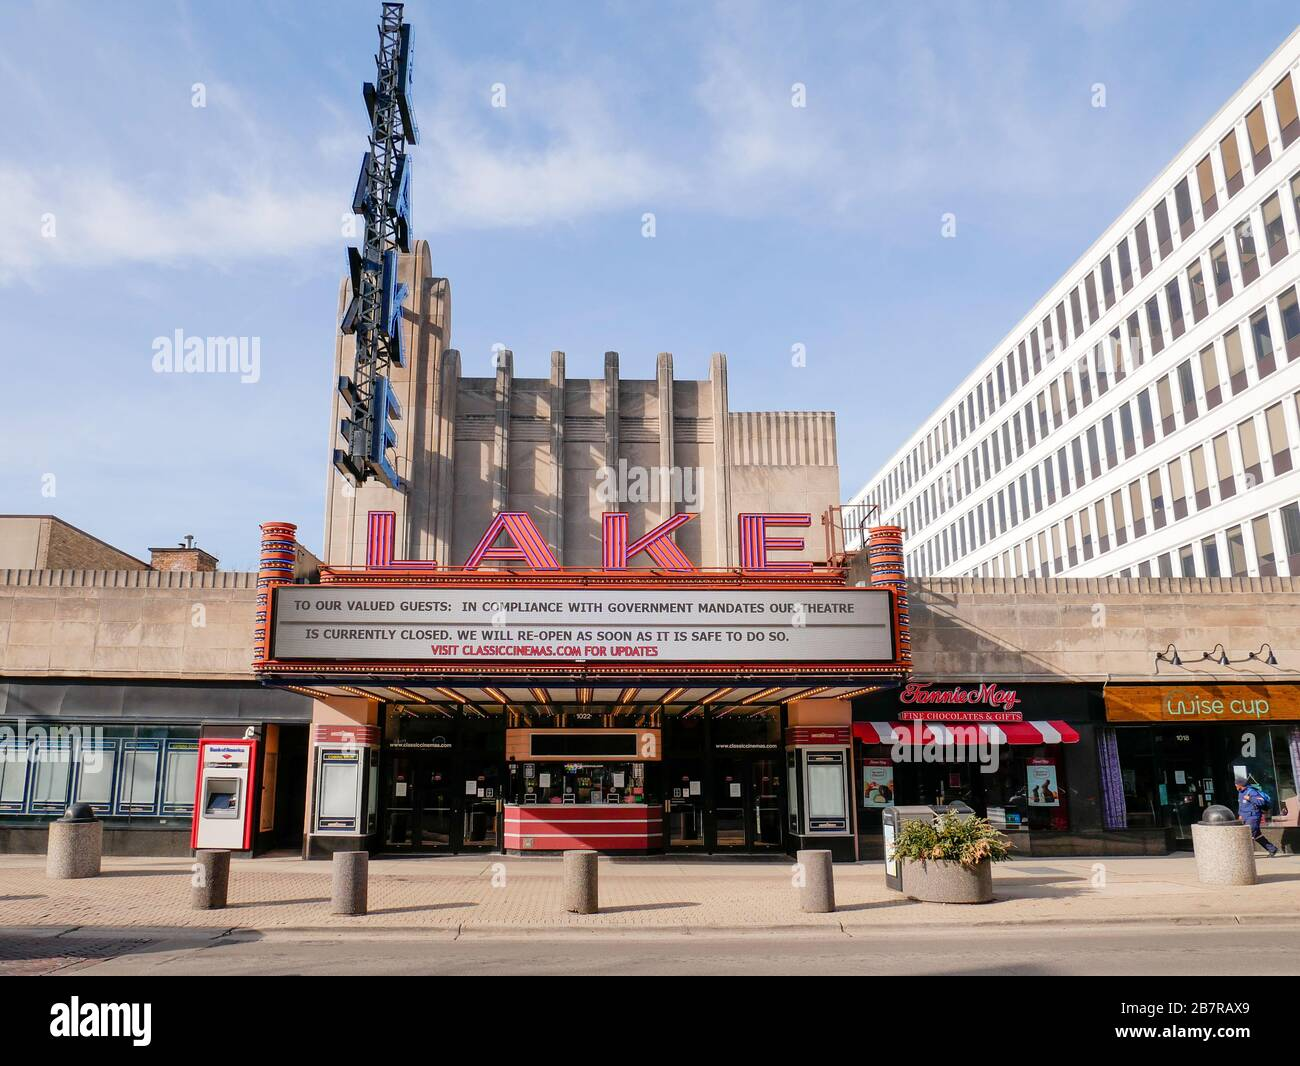 Oak Park, Illinois, USA,. 17th March 2020. The Lake Theater in